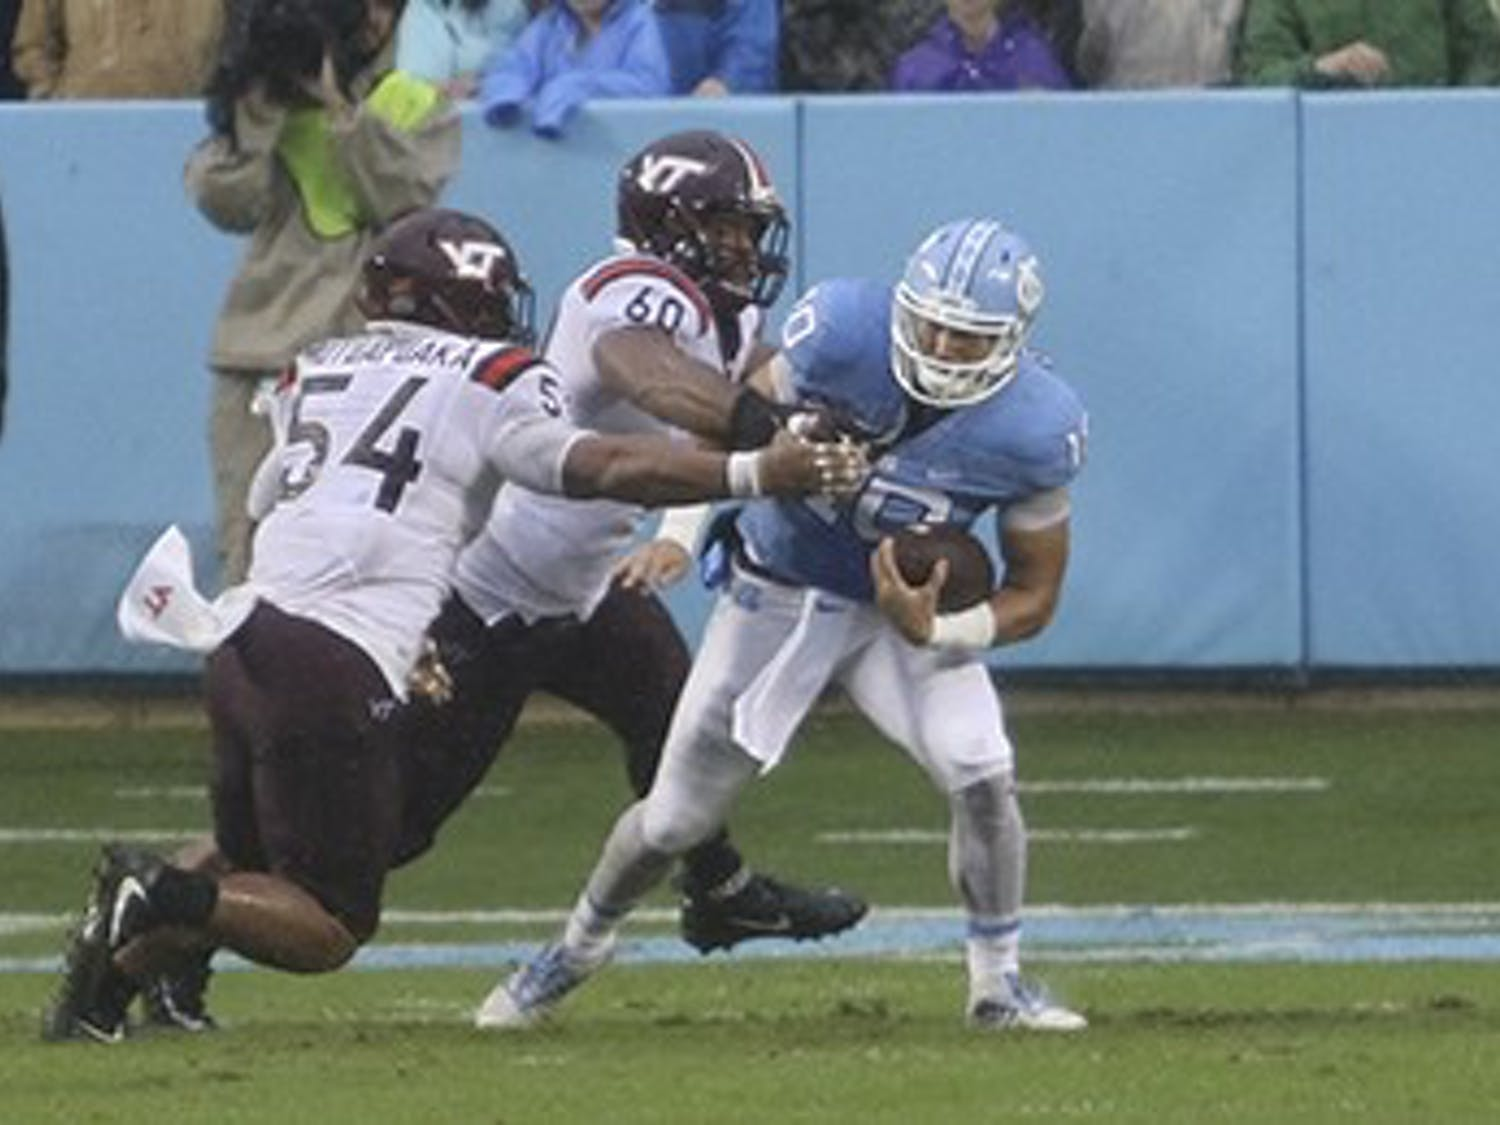 UNC fell to Virgina Tech 34-3 on Saturday.